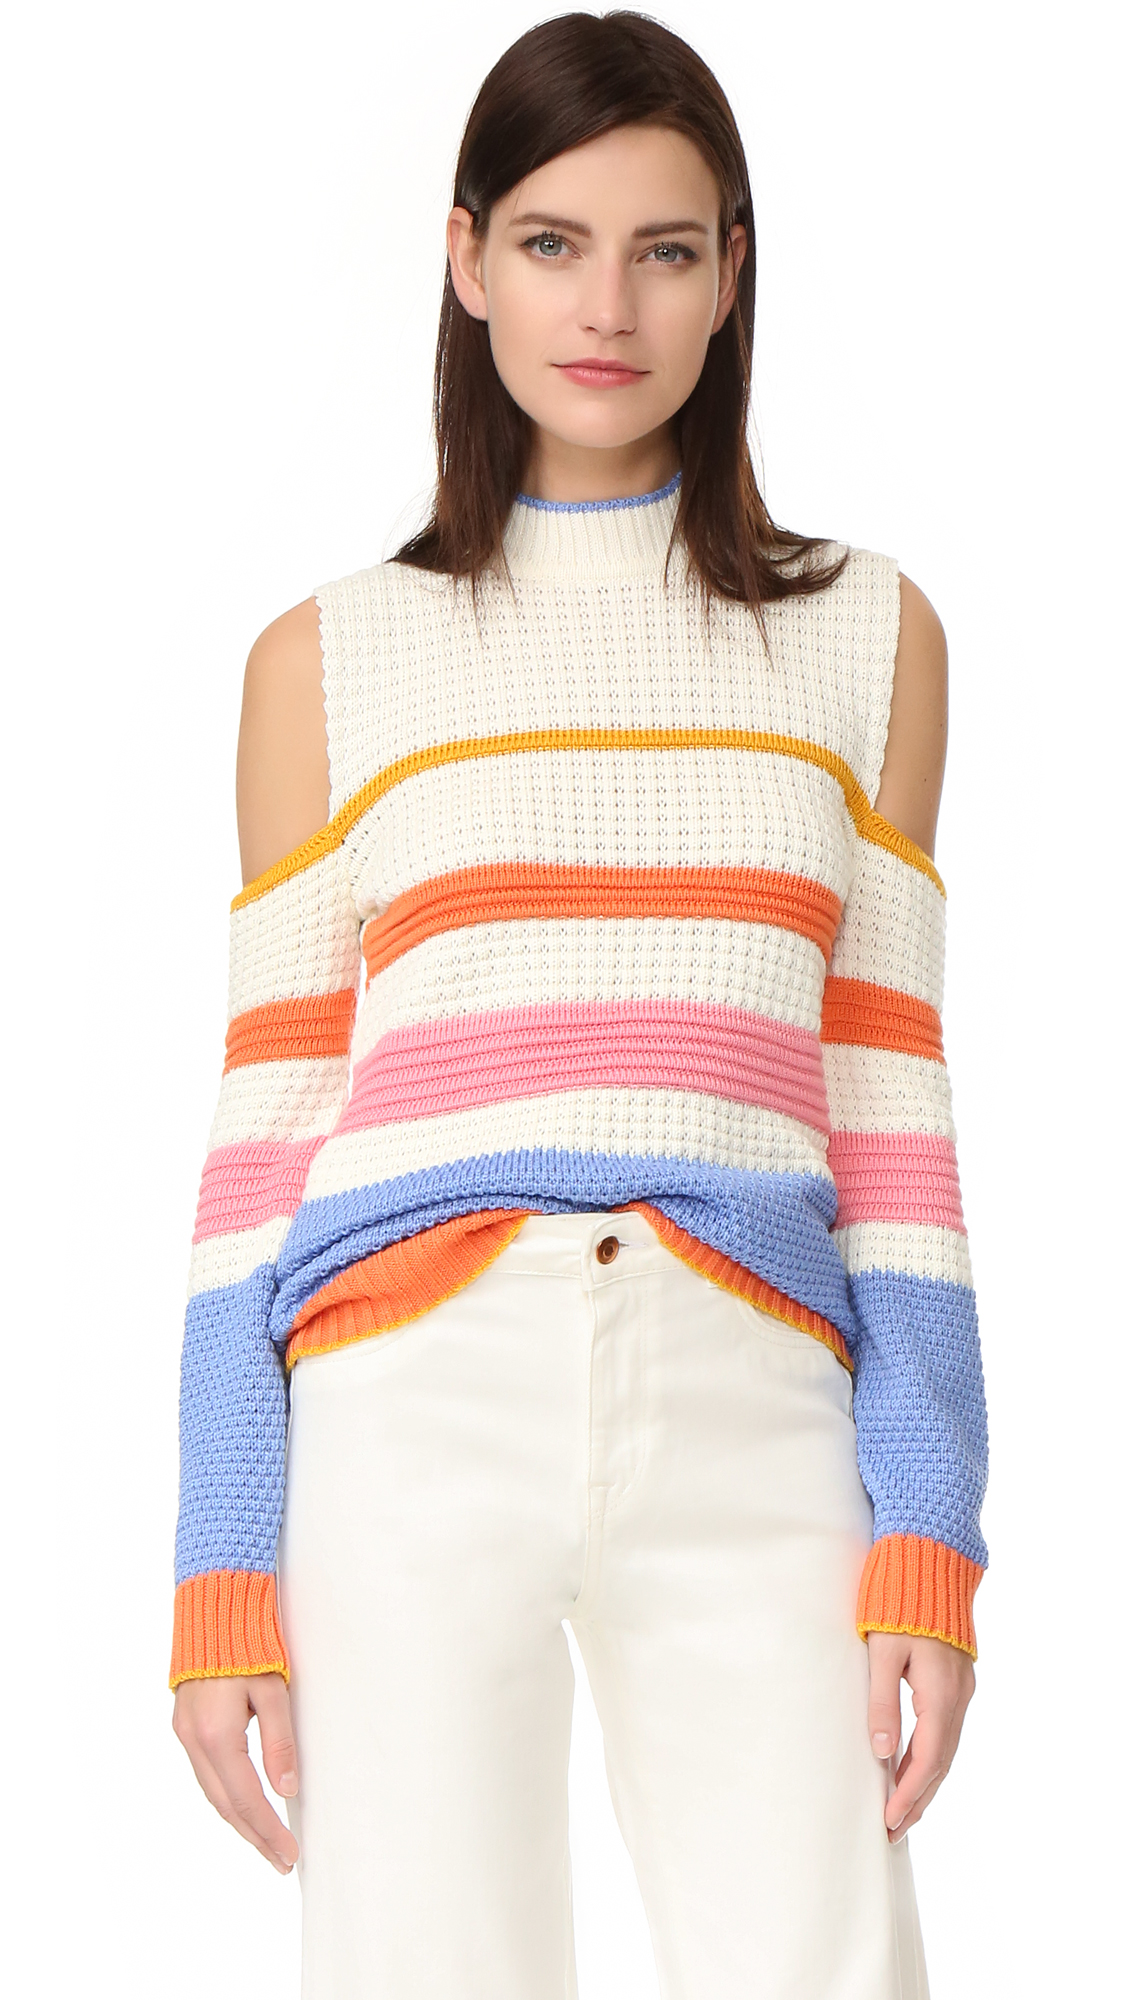 Anna October Striped Sweater - Multi